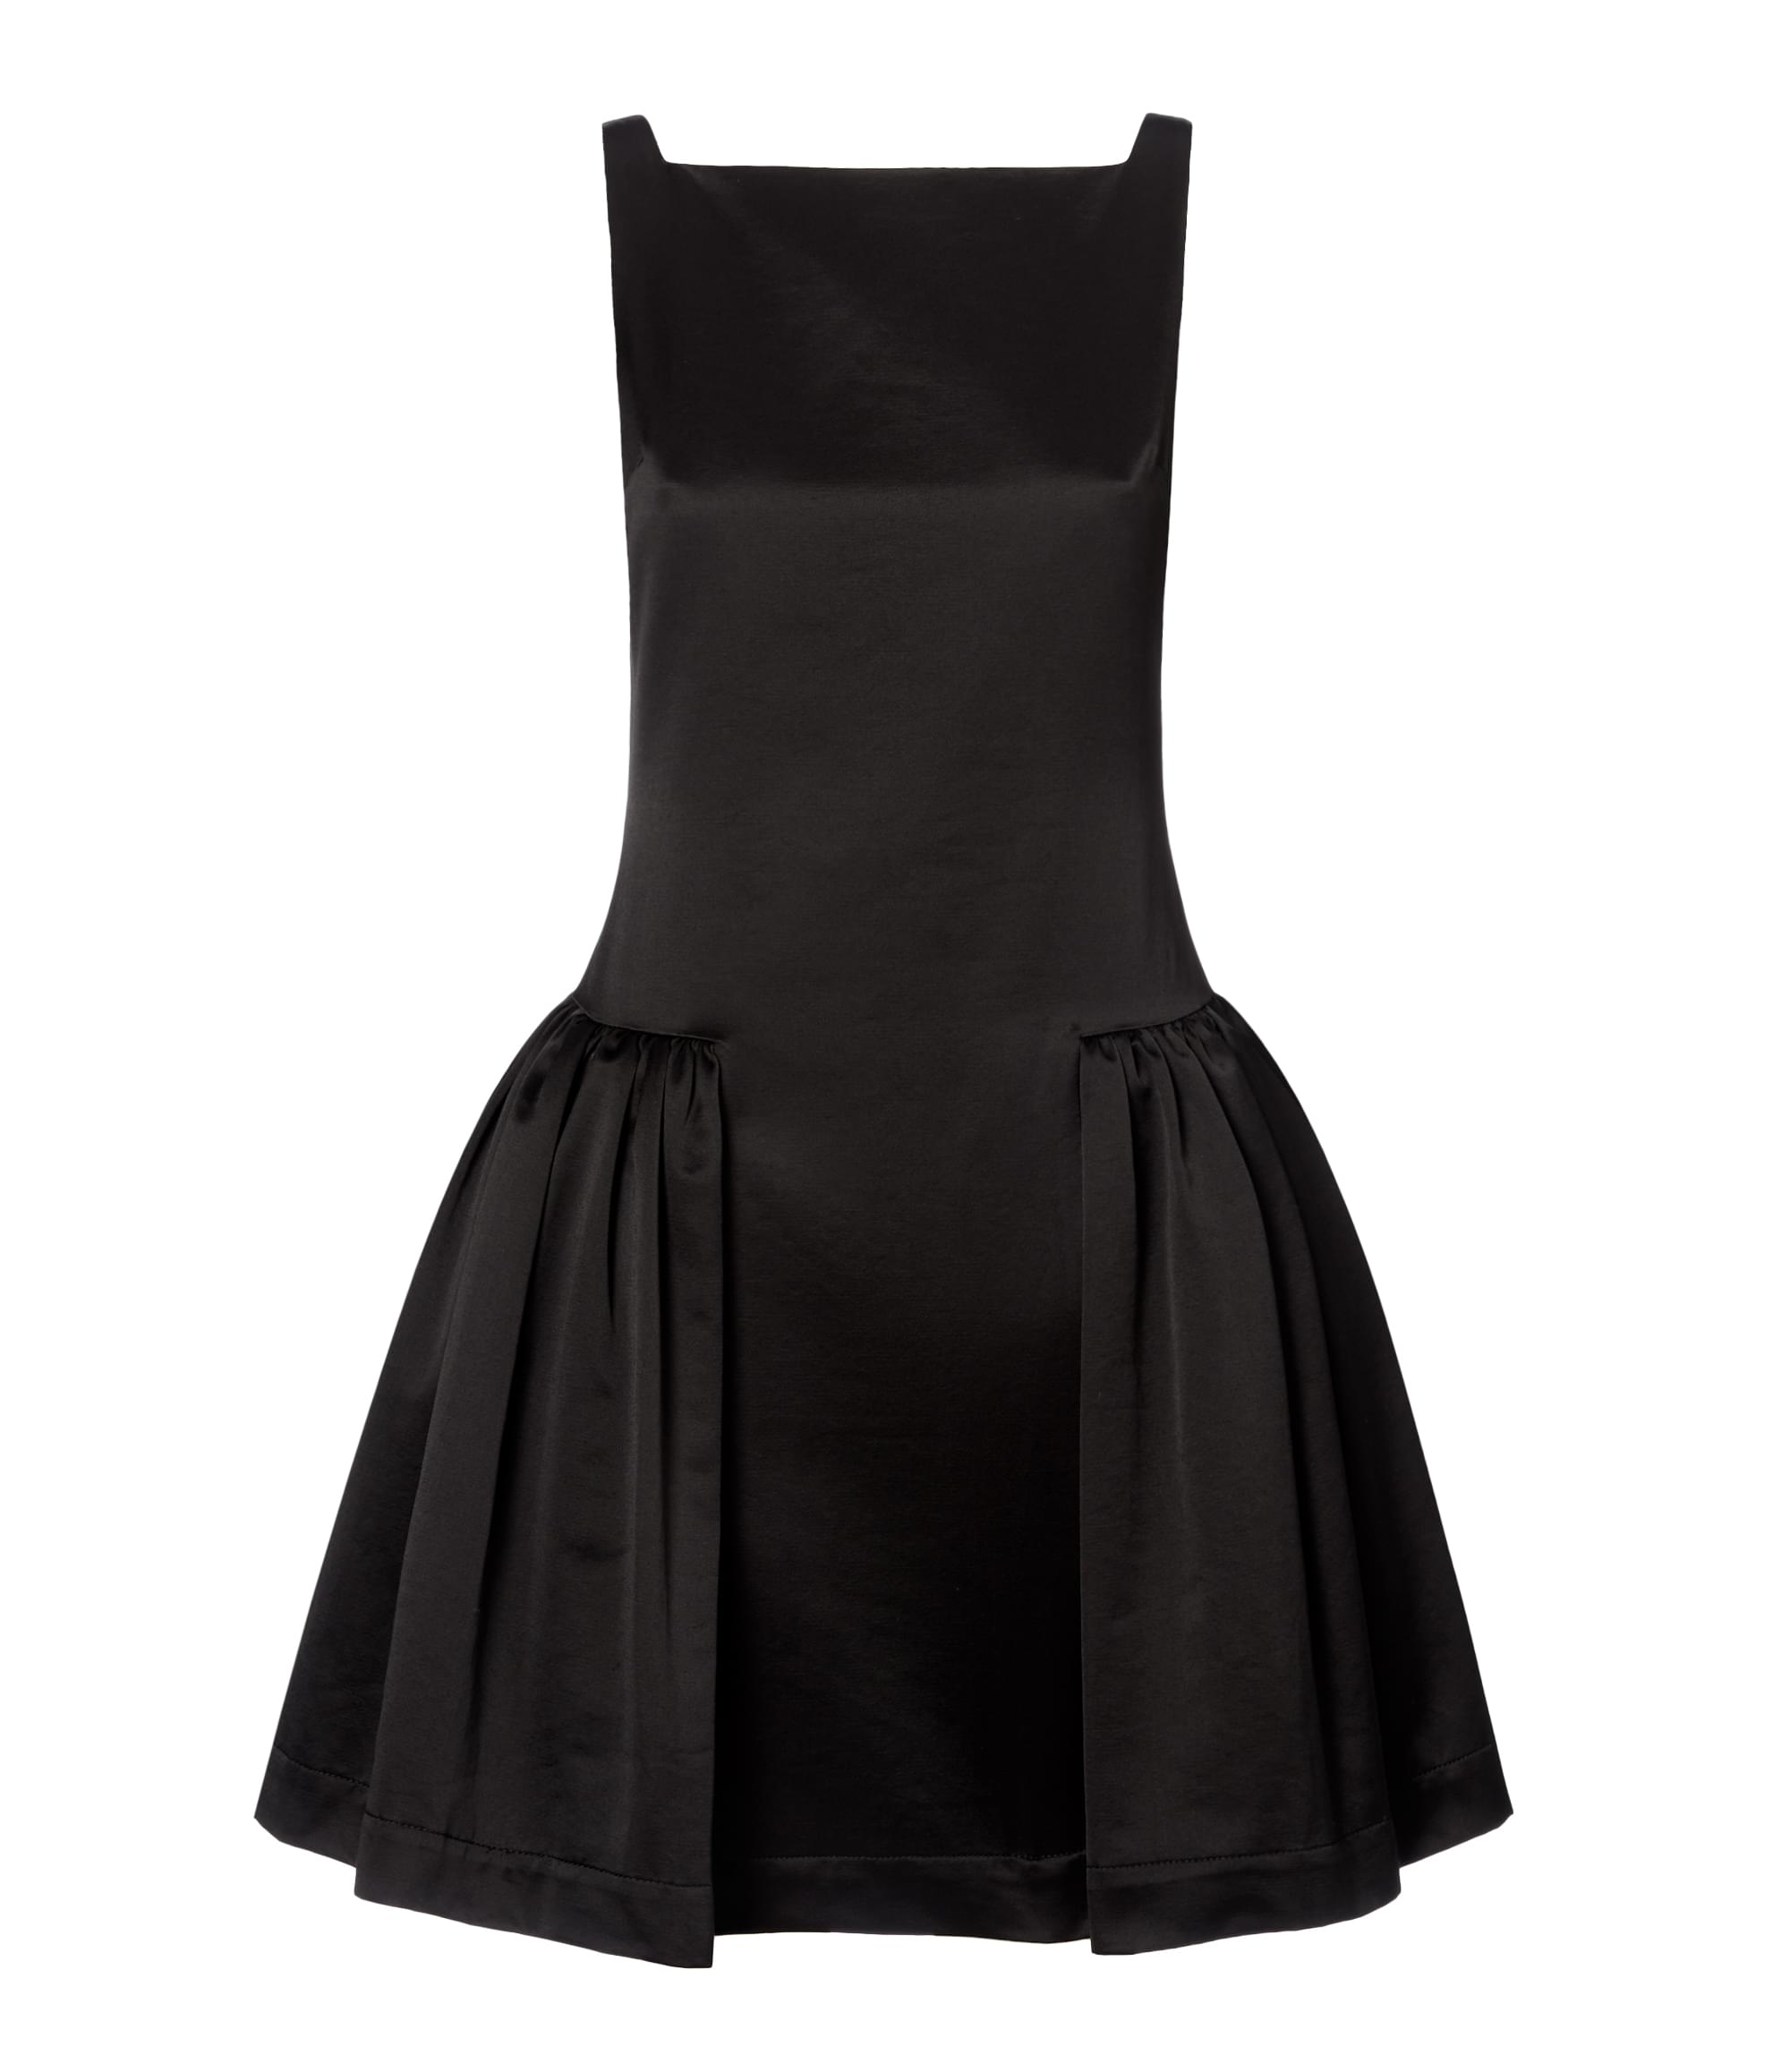 Vivienne Westwood Black Degass Dress